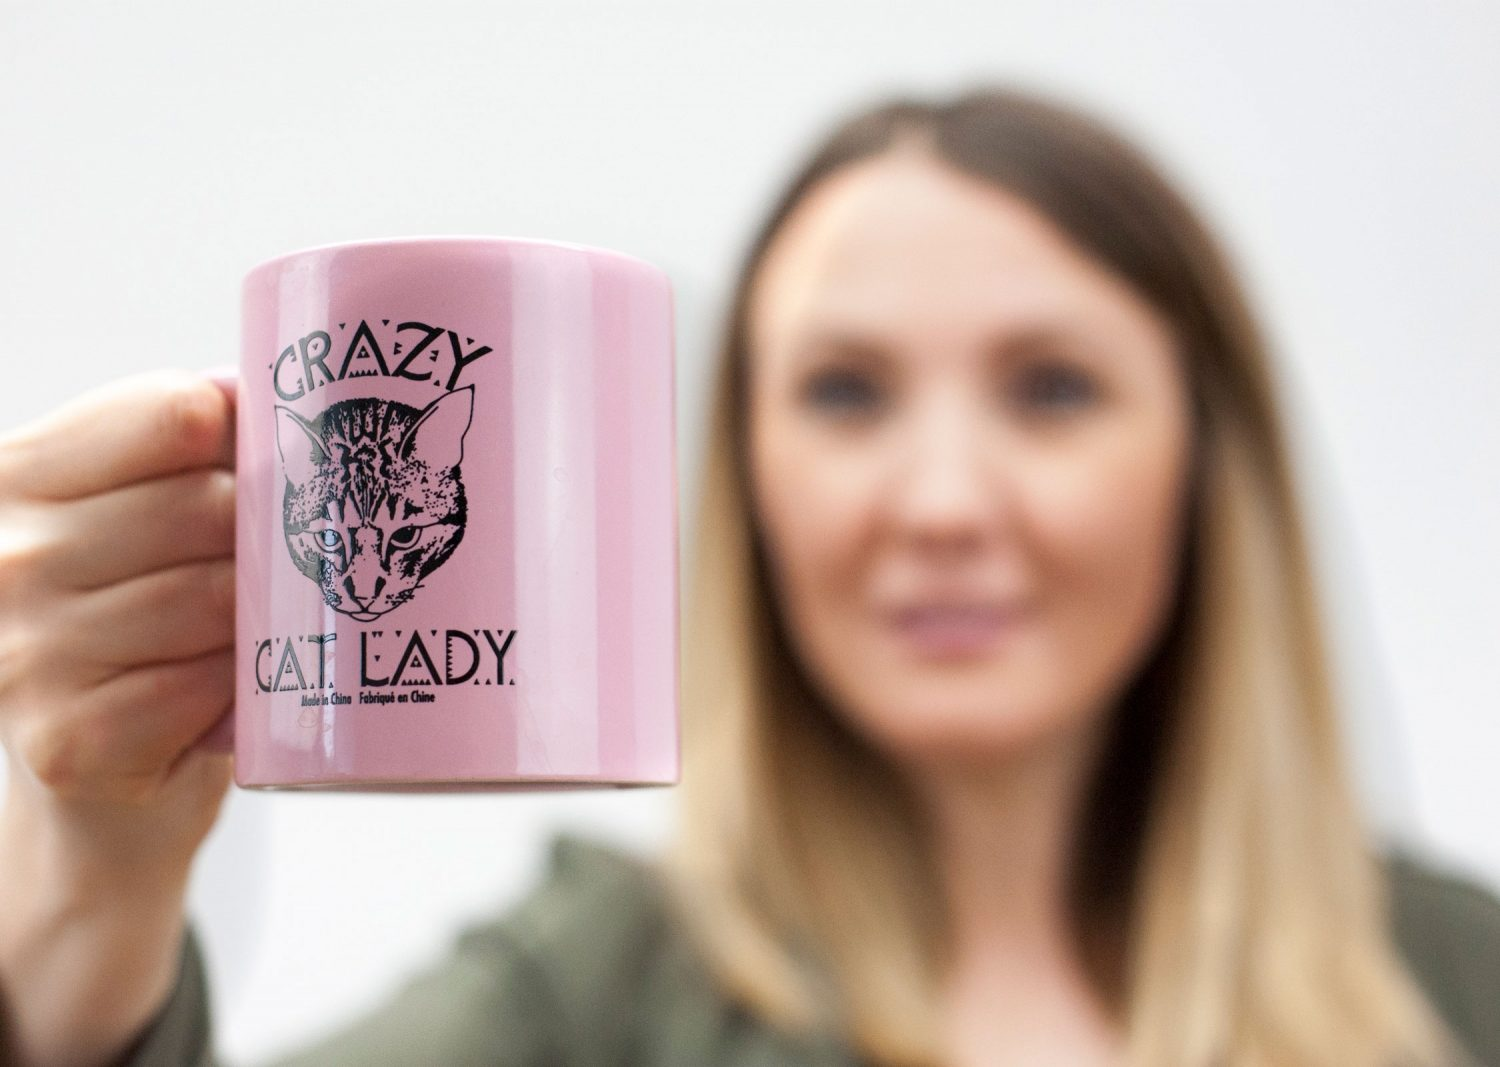 Crazy Cat Lady Pink Mug Sarah